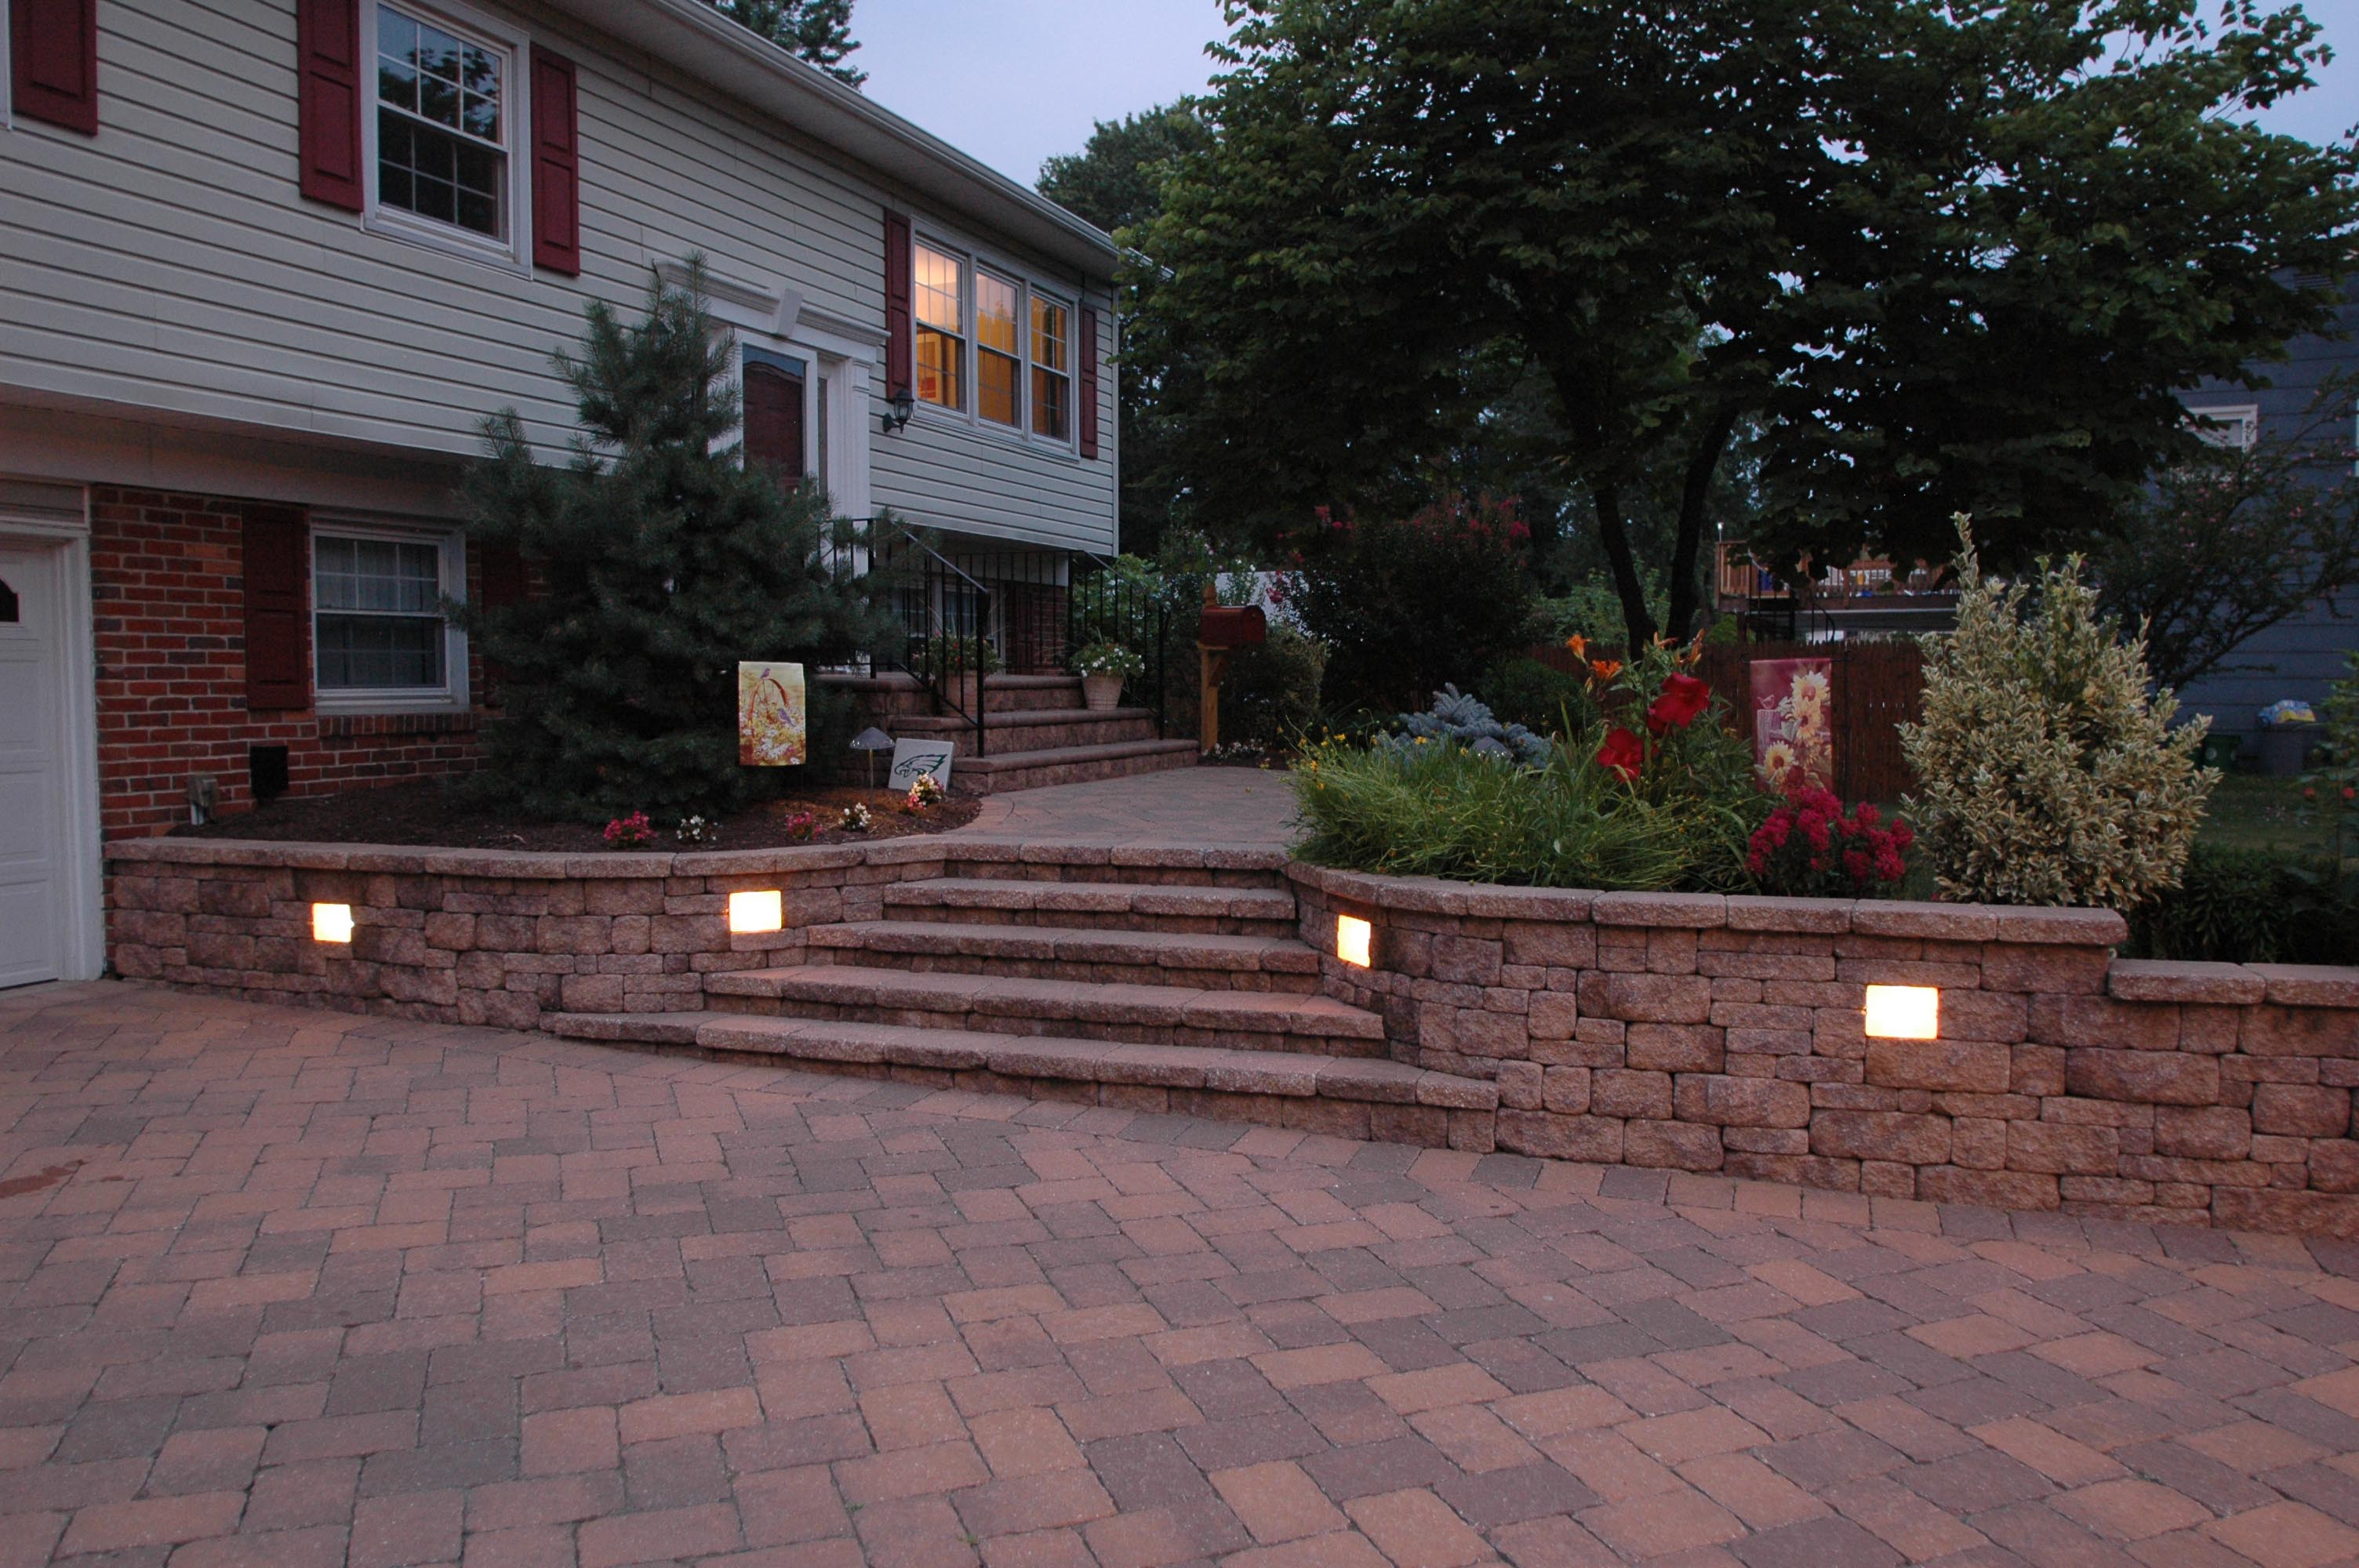 Lovely Driveway Pillars with Lights